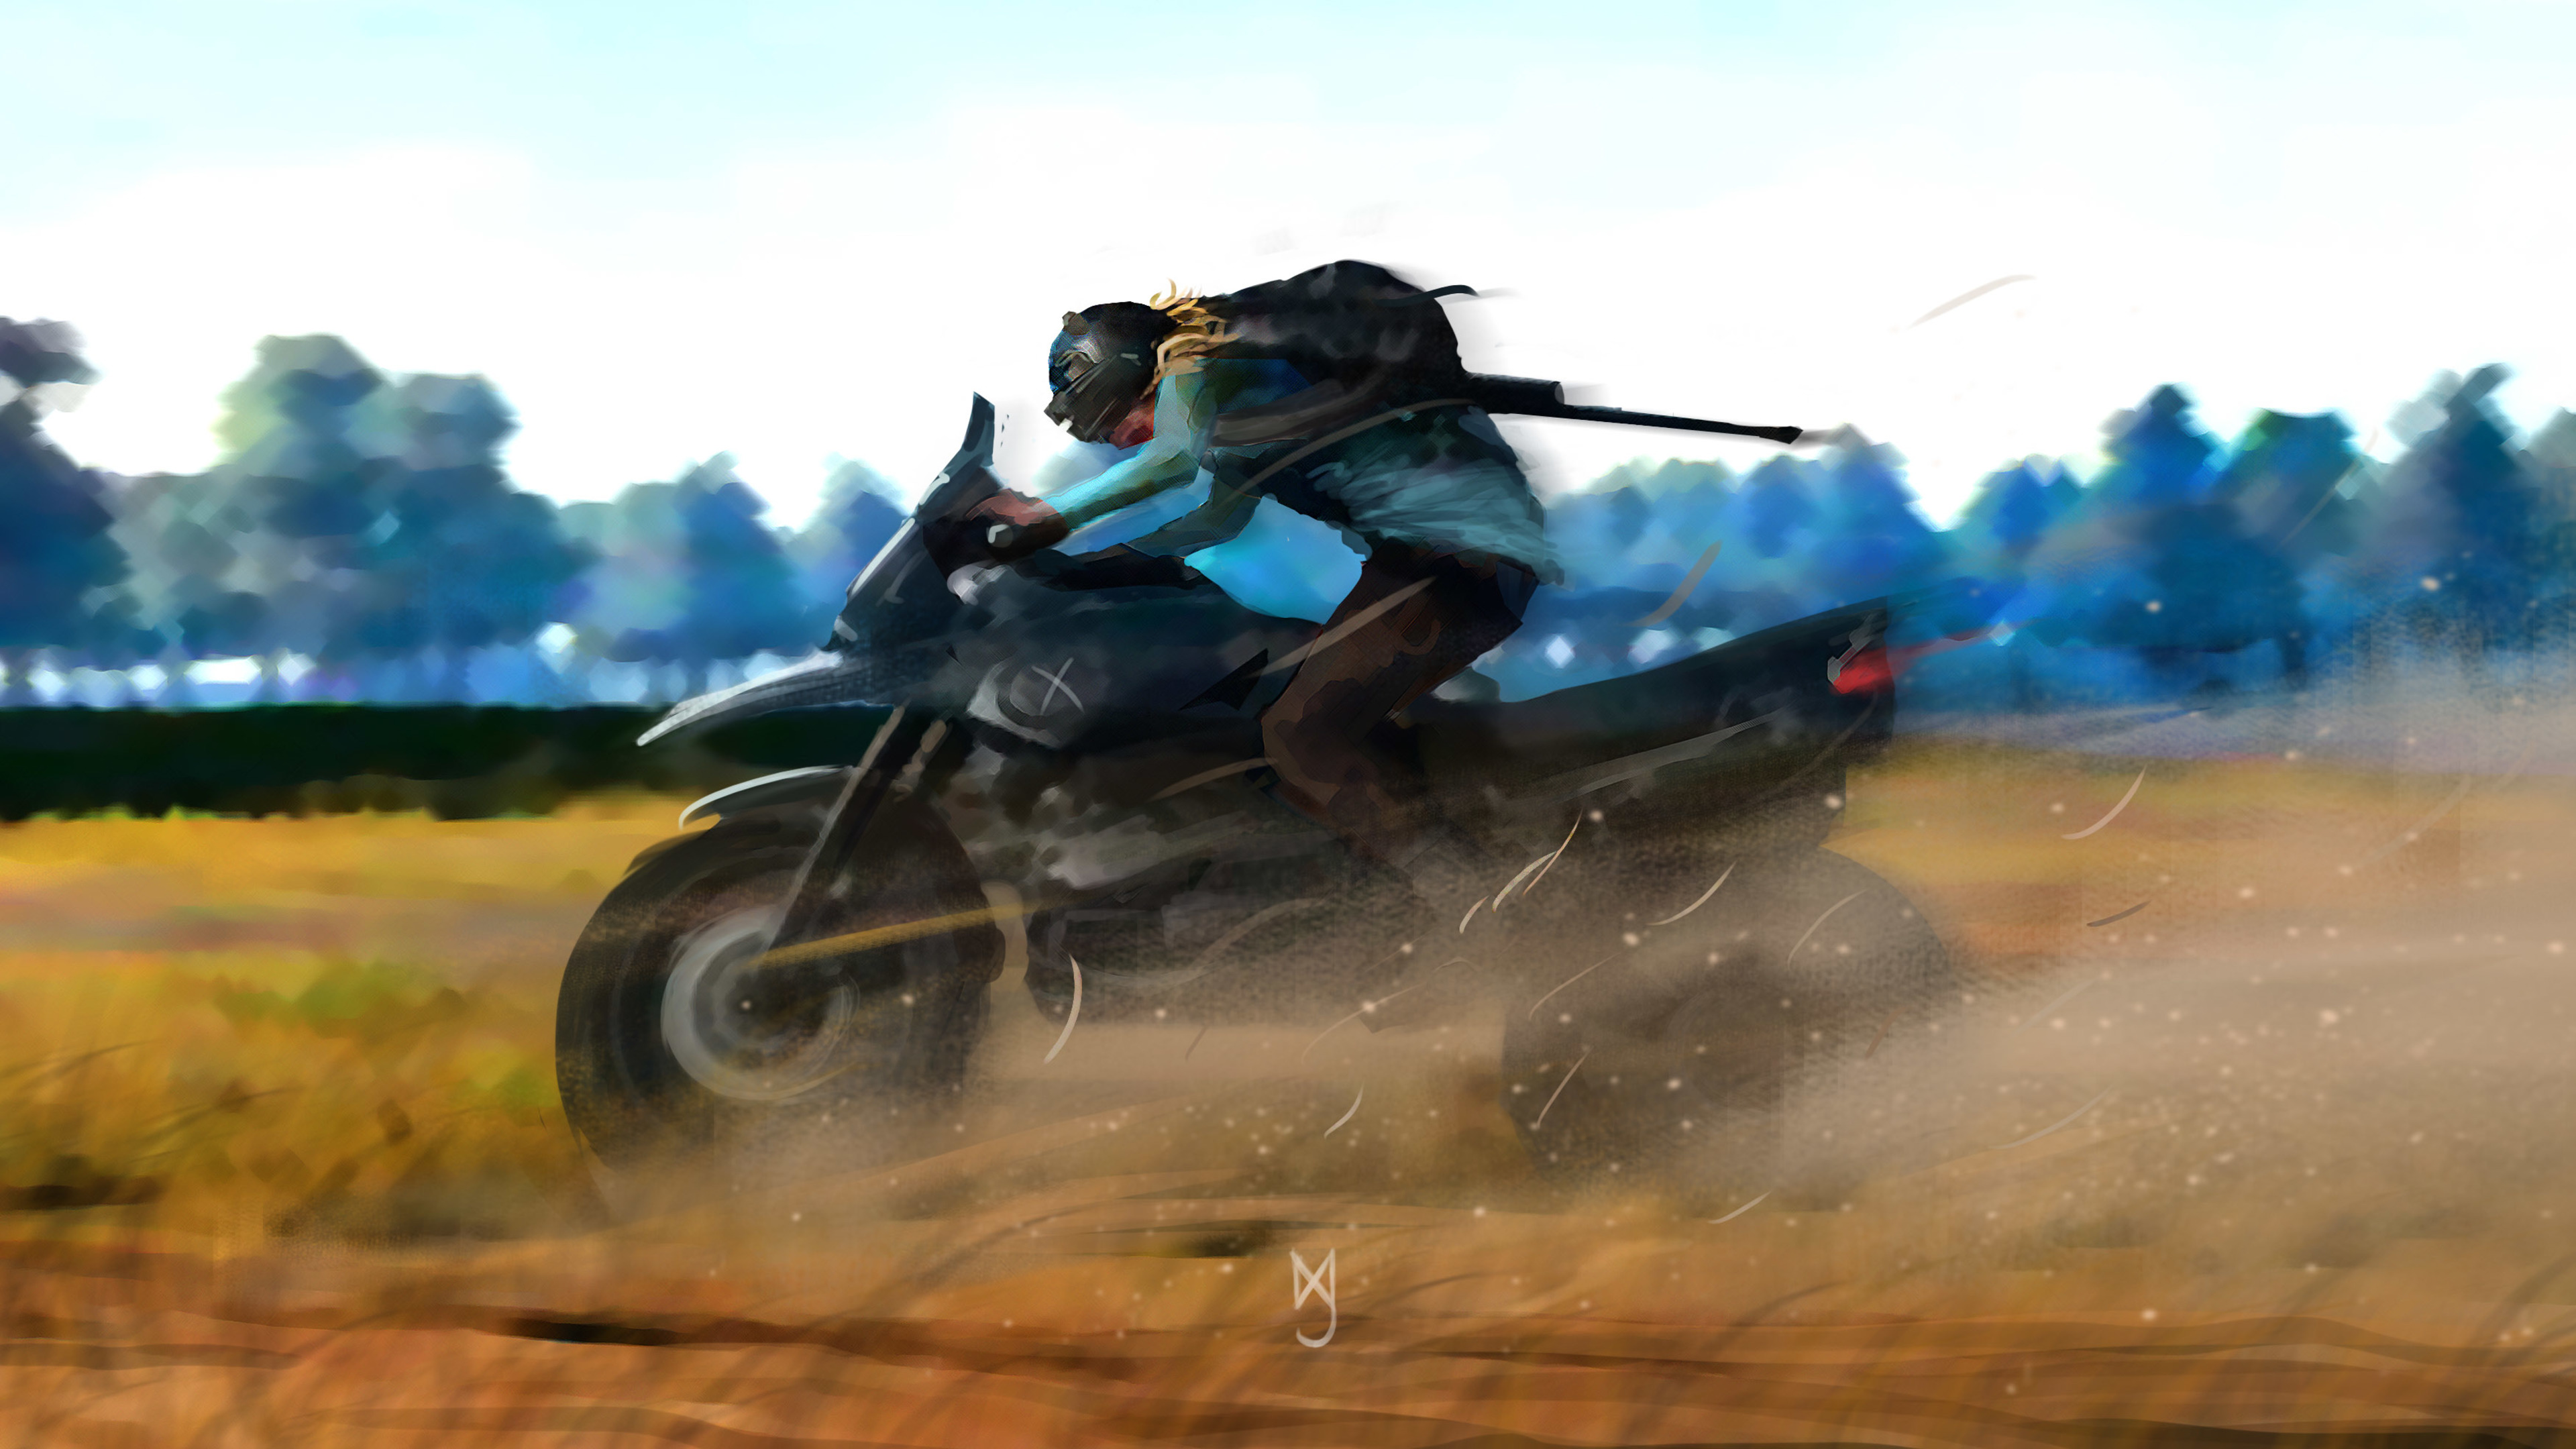 Wallpaper 4k Player Unknown S Battlegrounds Pubg 4k Bike Player Unknown S Battlegrounds 4k Wallpapers Pubg 4k Hd Bike Wallpapers Pubg 4k Wallpapers Pubg Hd Wallpapers Pubg Wallpaper 1920x1080 Hd Pubg Wallpaper Iphone Pubg